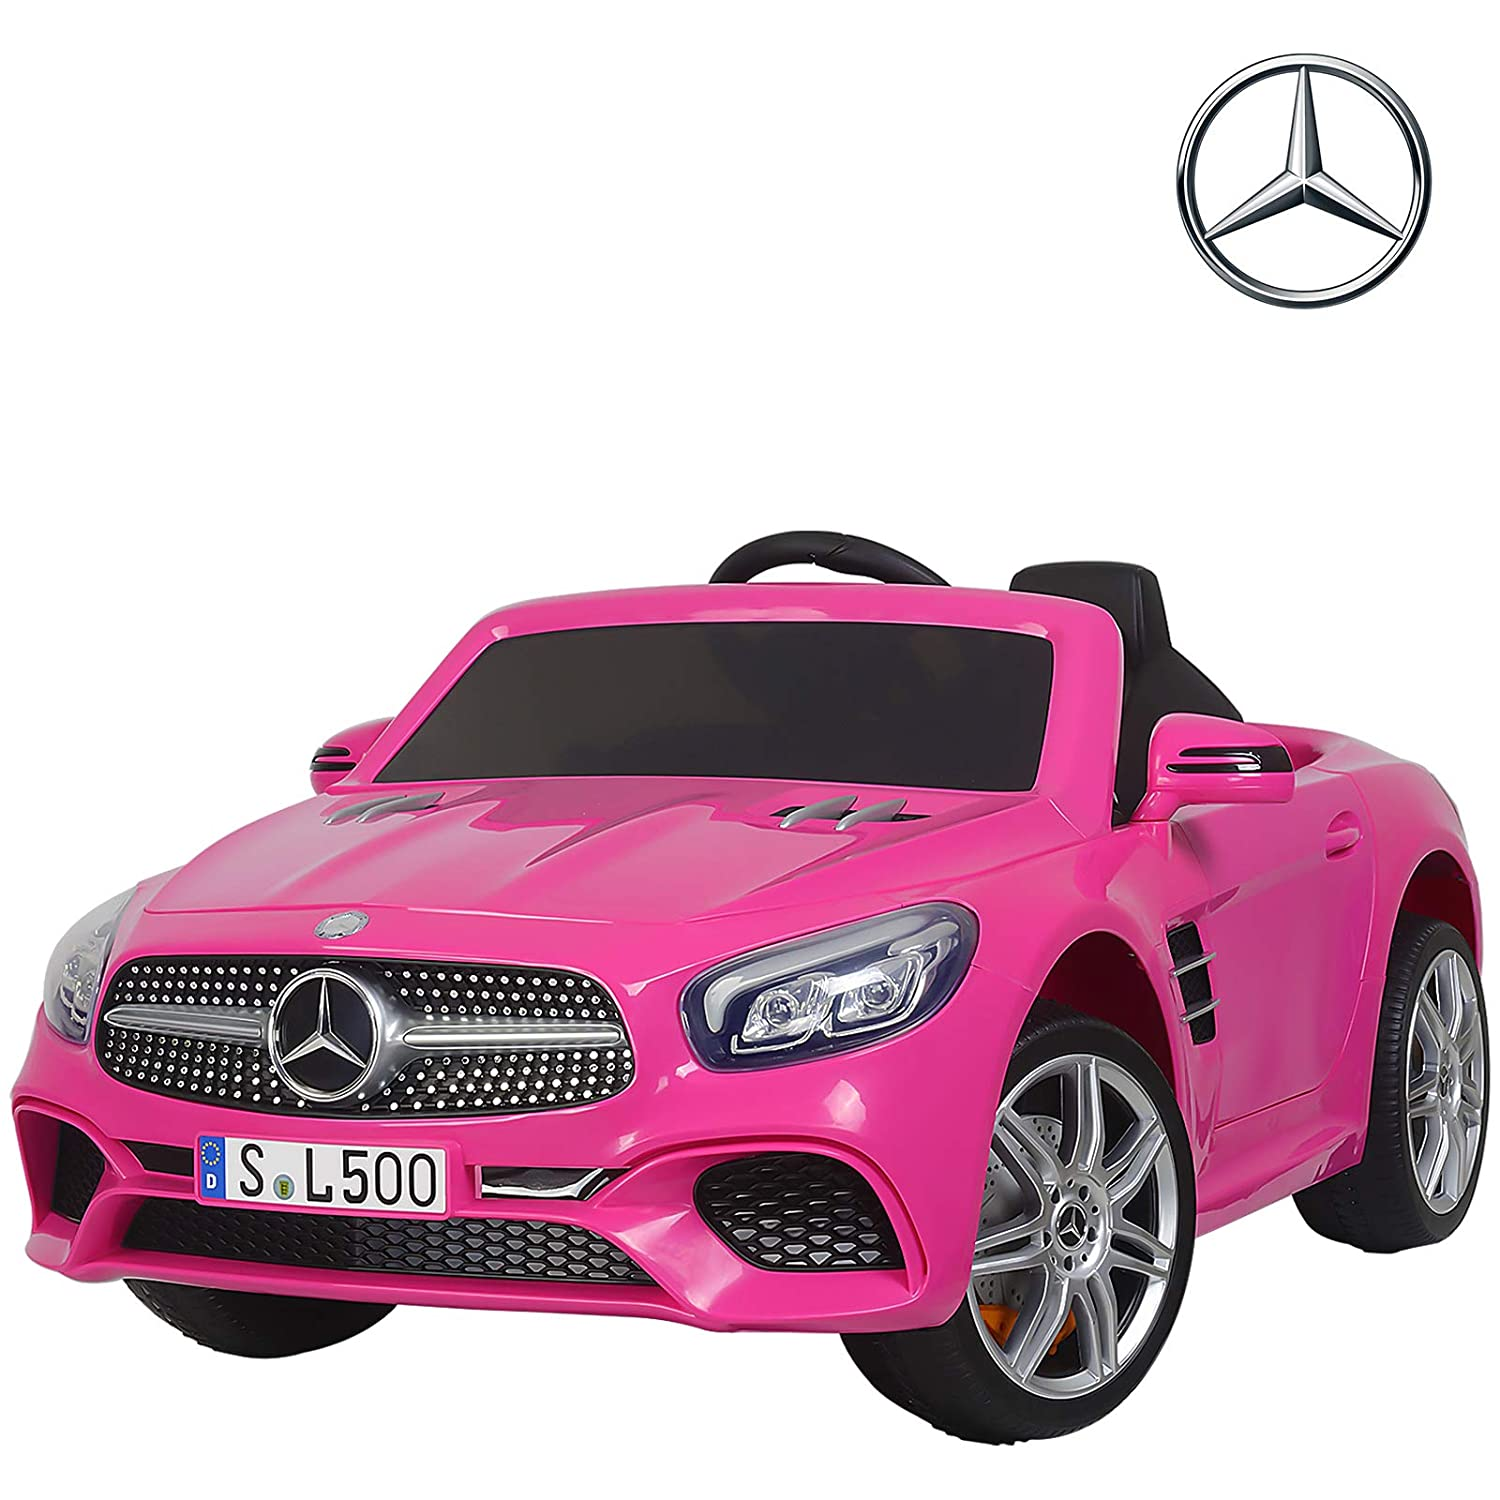 Car For Kids >> Uenjoy 12v Licensed Mercedes Benz Sl500 Kids Ride On Car Electric Cars Motorized Vehicles For Girls With Remote Control Music Horn Spring